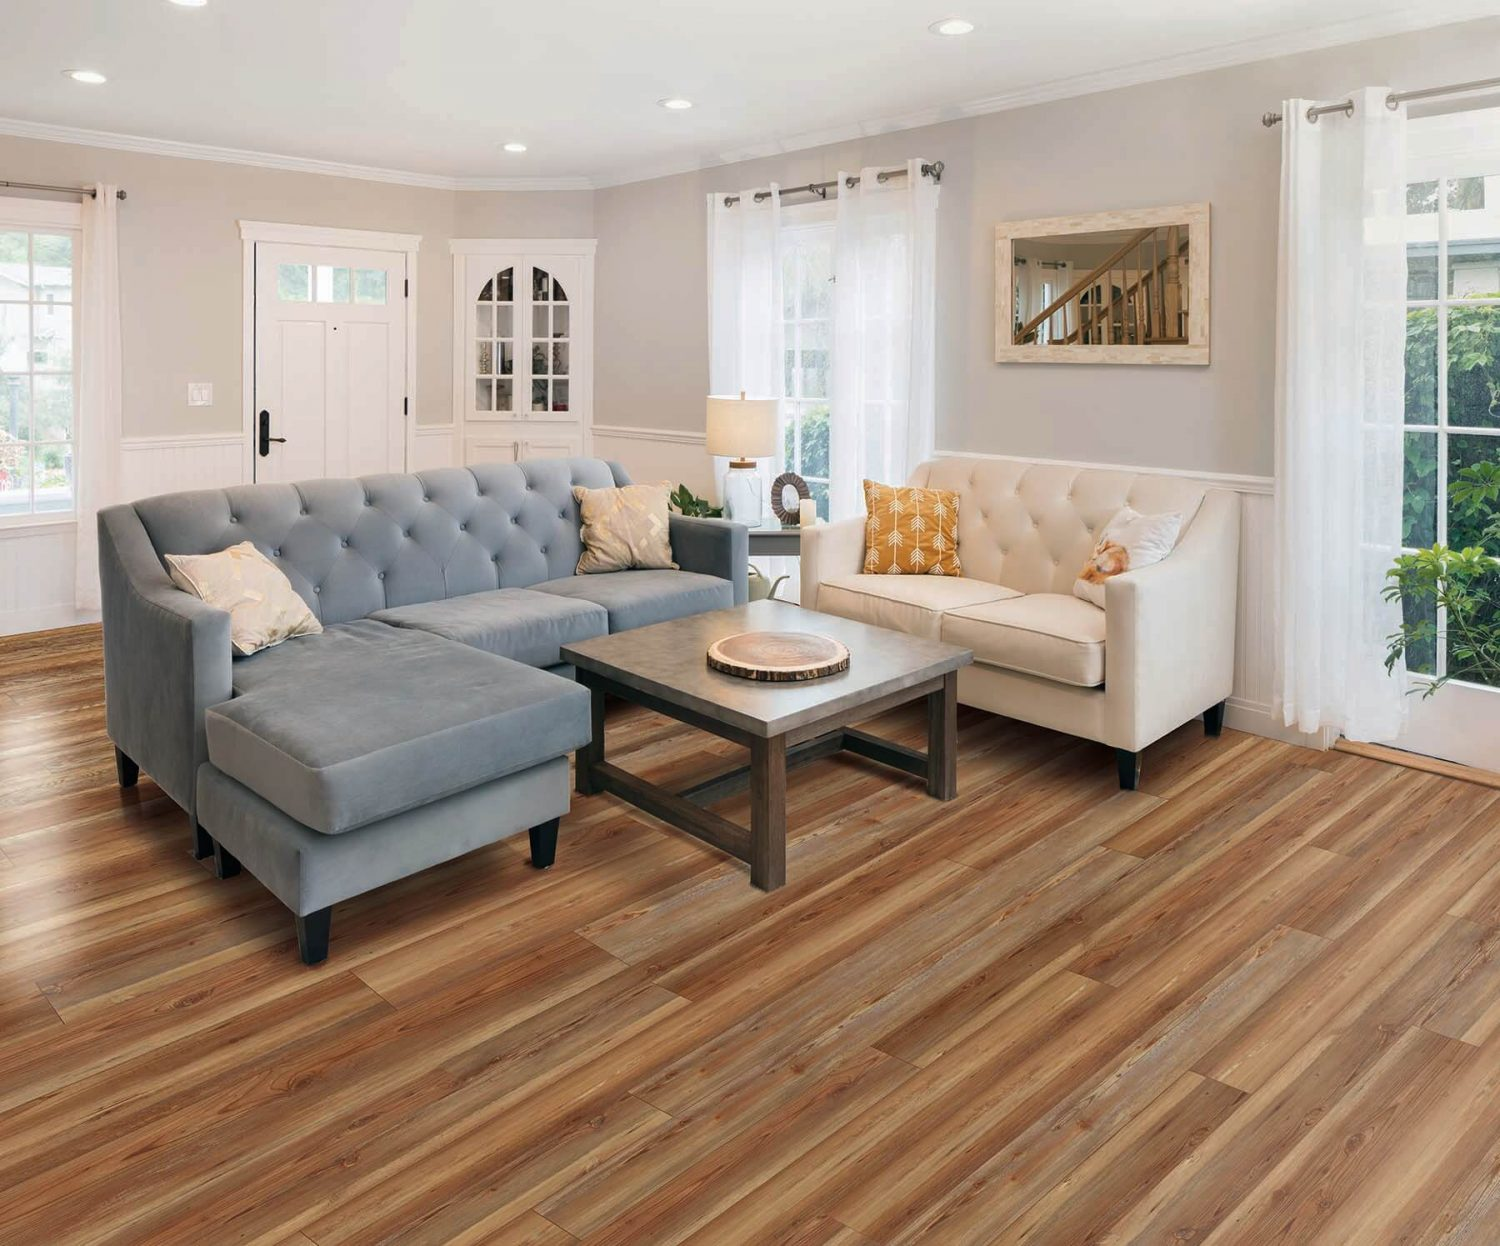 Axis Prime - Ohio Valley Reclaimed Wood